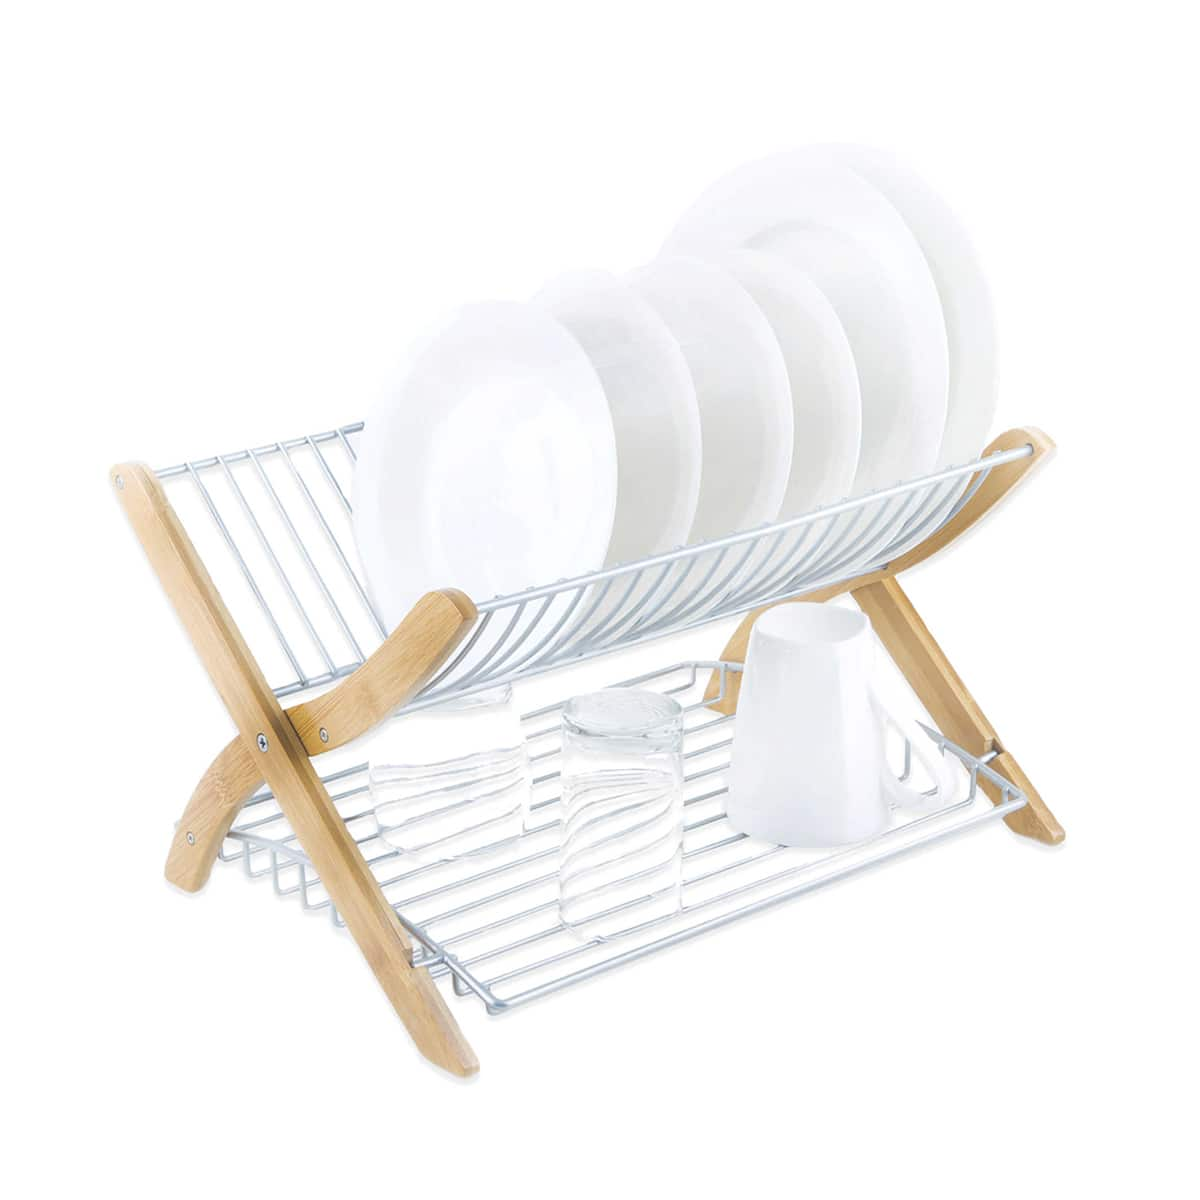 10 Dish Drying Racks That Are Better than a Tea Towel: gallery image 6